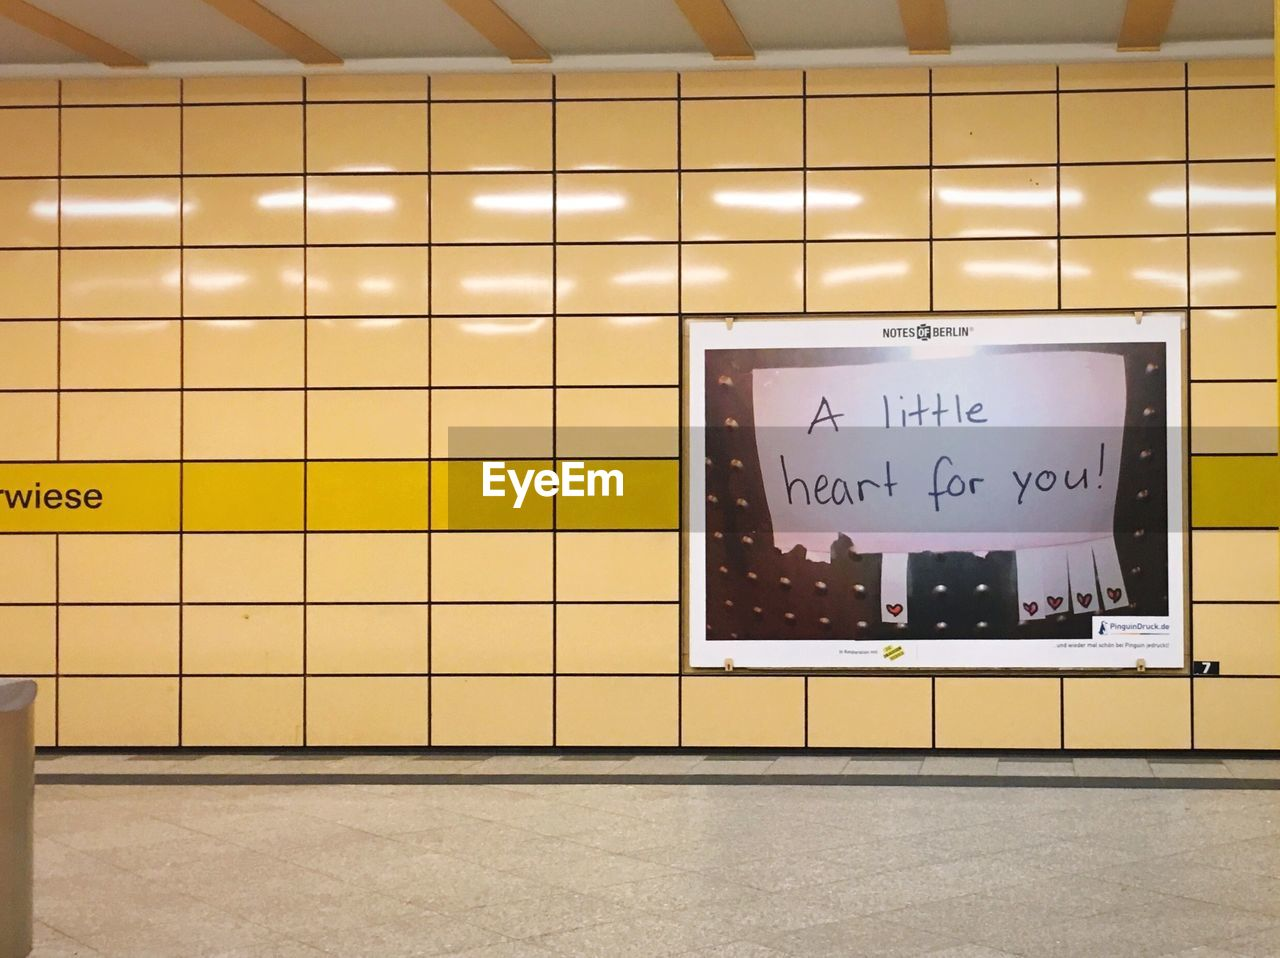 text, communication, indoors, wall - building feature, western script, tile, flooring, no people, illuminated, information, information sign, architecture, sign, yellow, lighting equipment, subway station, non-western script, script, built structure, arrow symbol, message